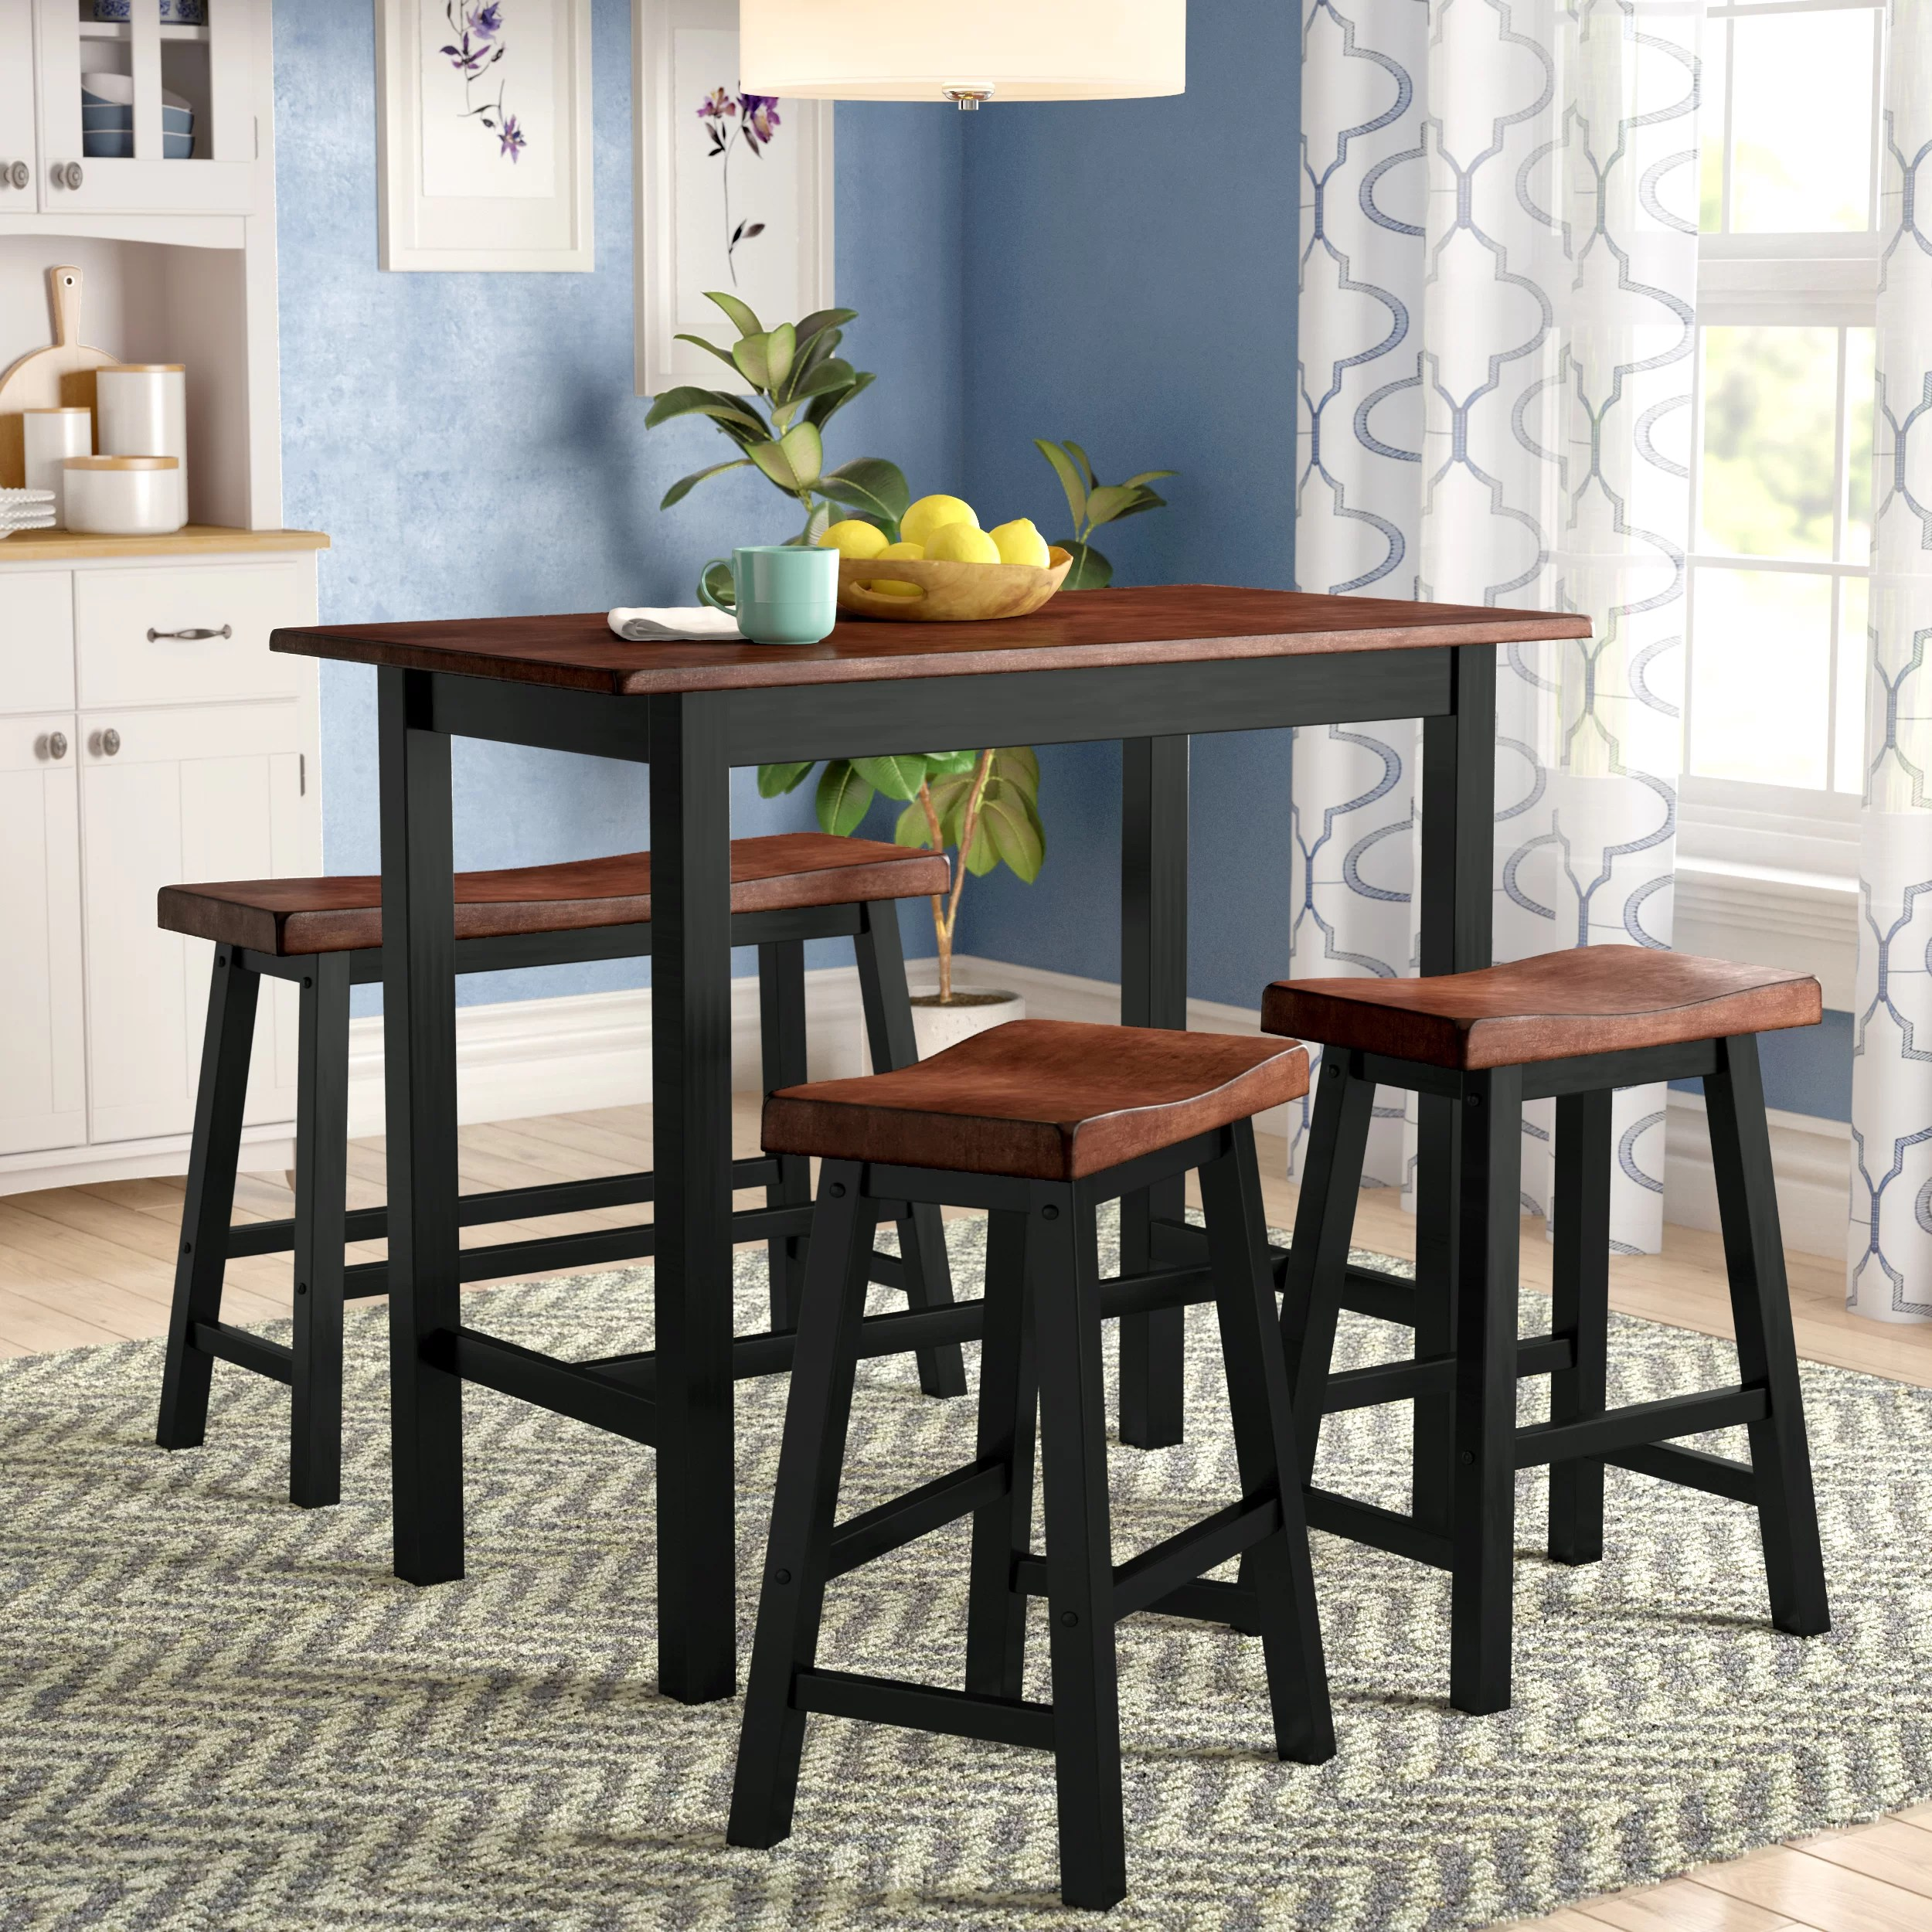 Wayfair Kitchen Dining Room Sets You Ll Love In 2021